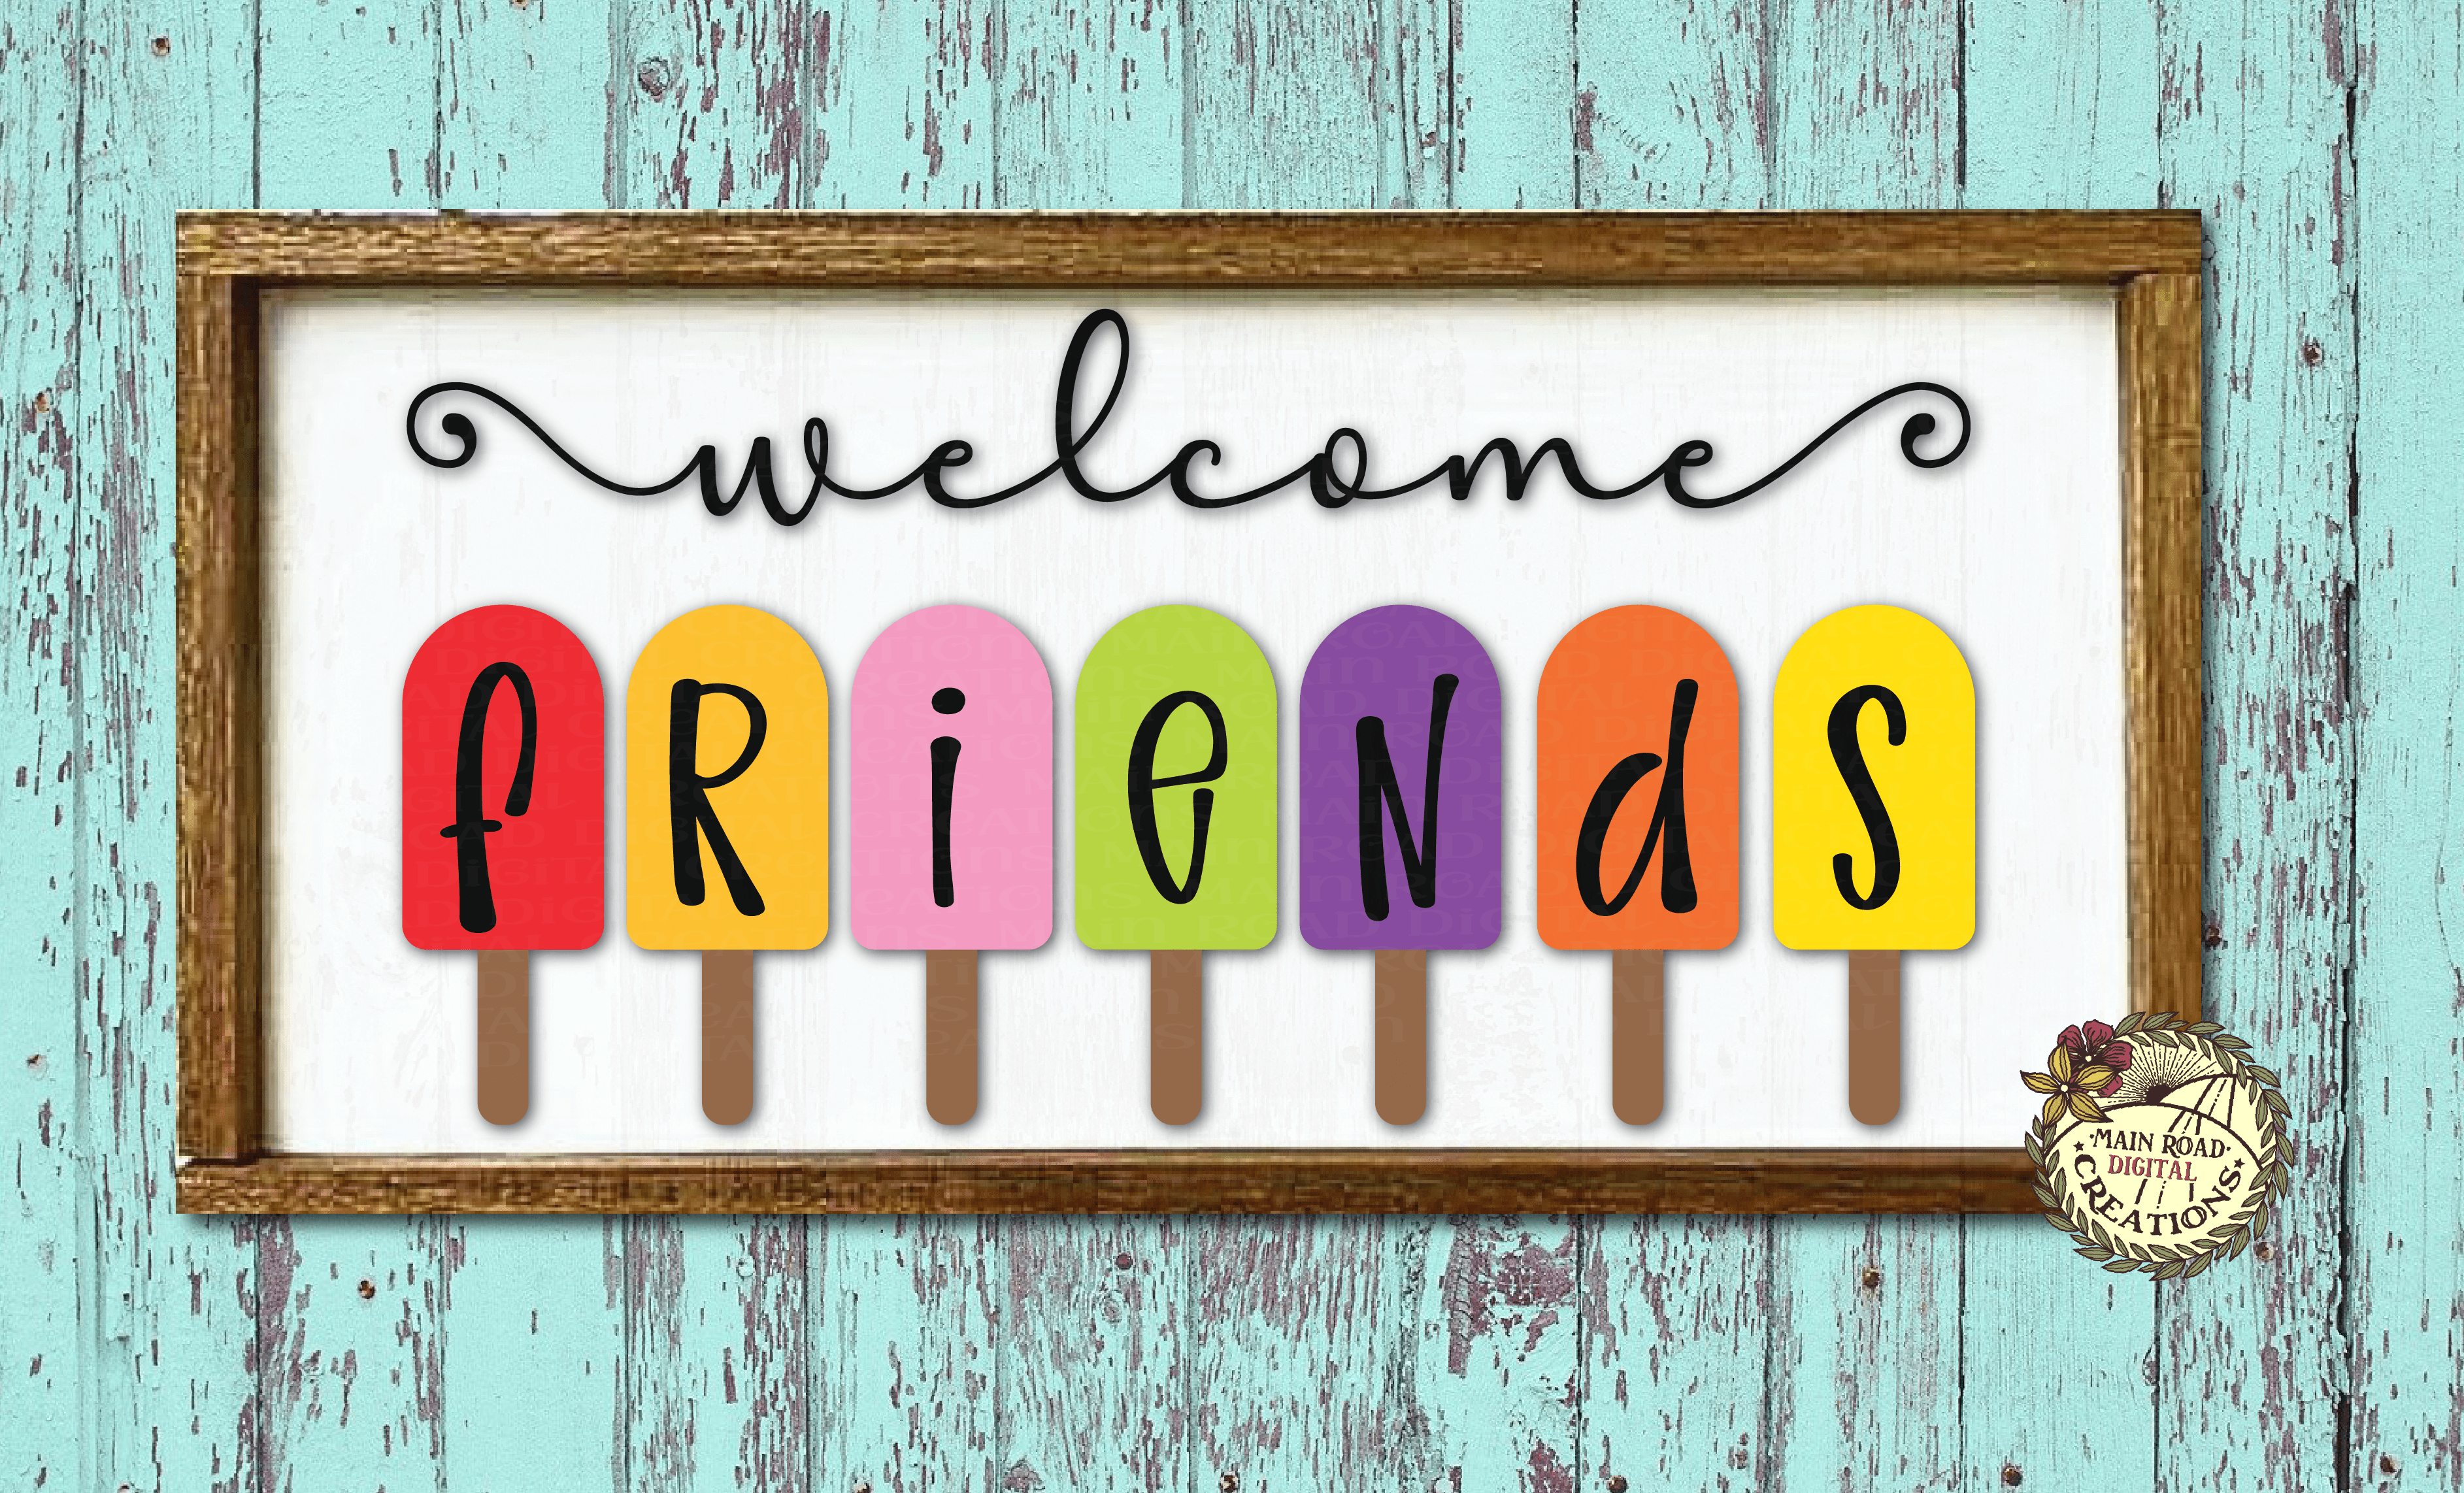 free welcome friends svg, popsicle svg free, popsicle clipart free, welcome sign svg free, friends svg, front porch sign svg, free sign svg, free summer svg